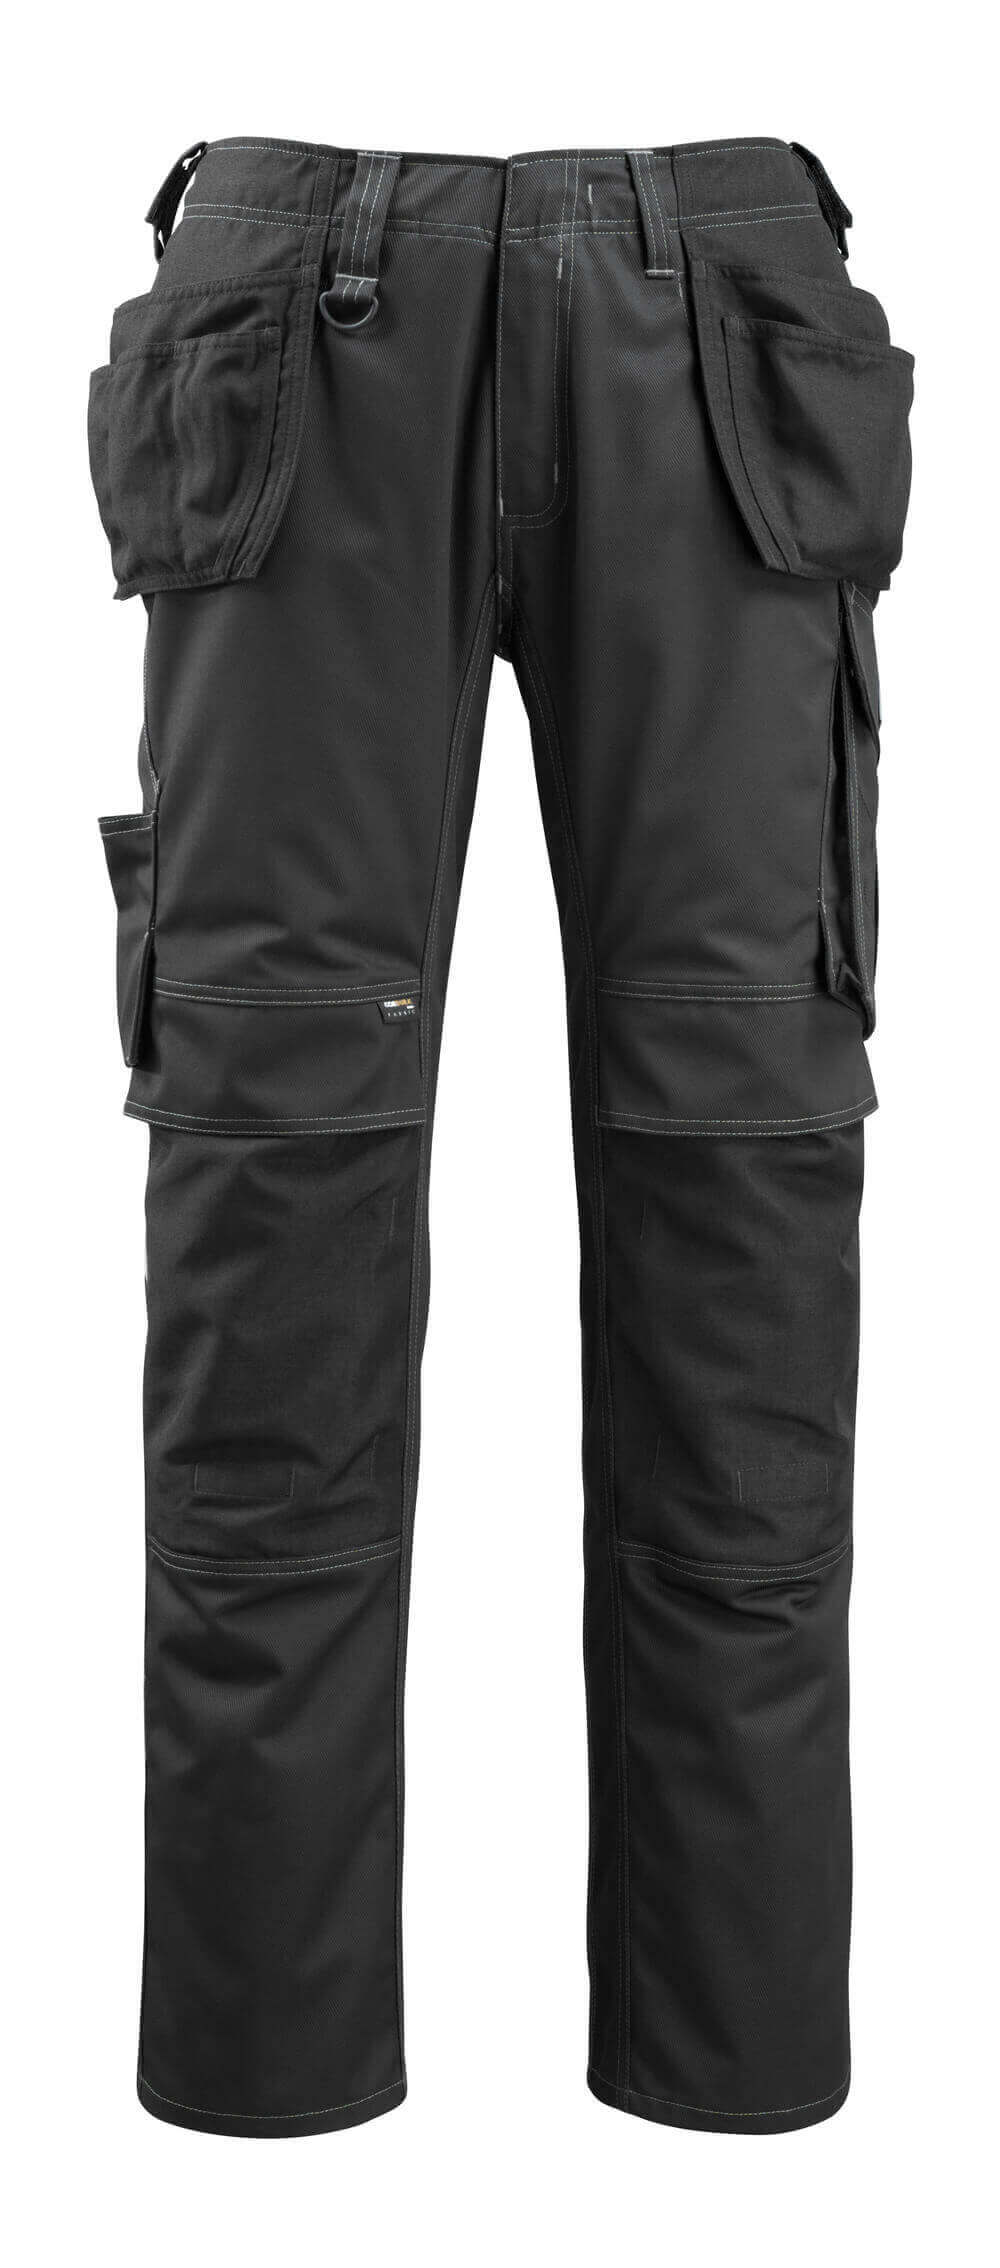 14131-203-09 Trousers with kneepad pockets and holster pockets - black